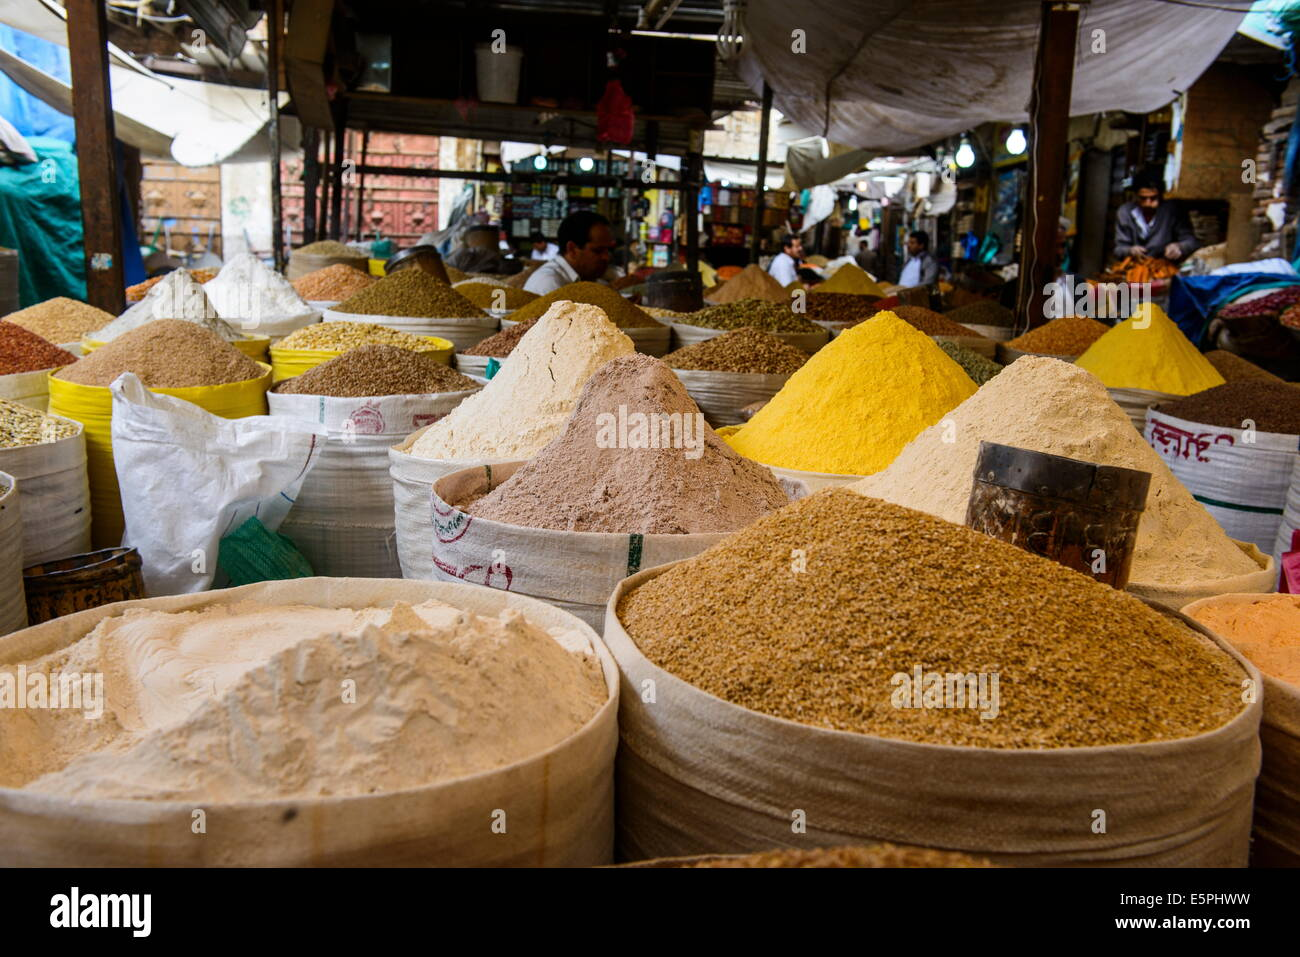 Spice market in the Old Town, UNESCO World Heritage Site, Sanaa, Yemen, Middle East - Stock Image